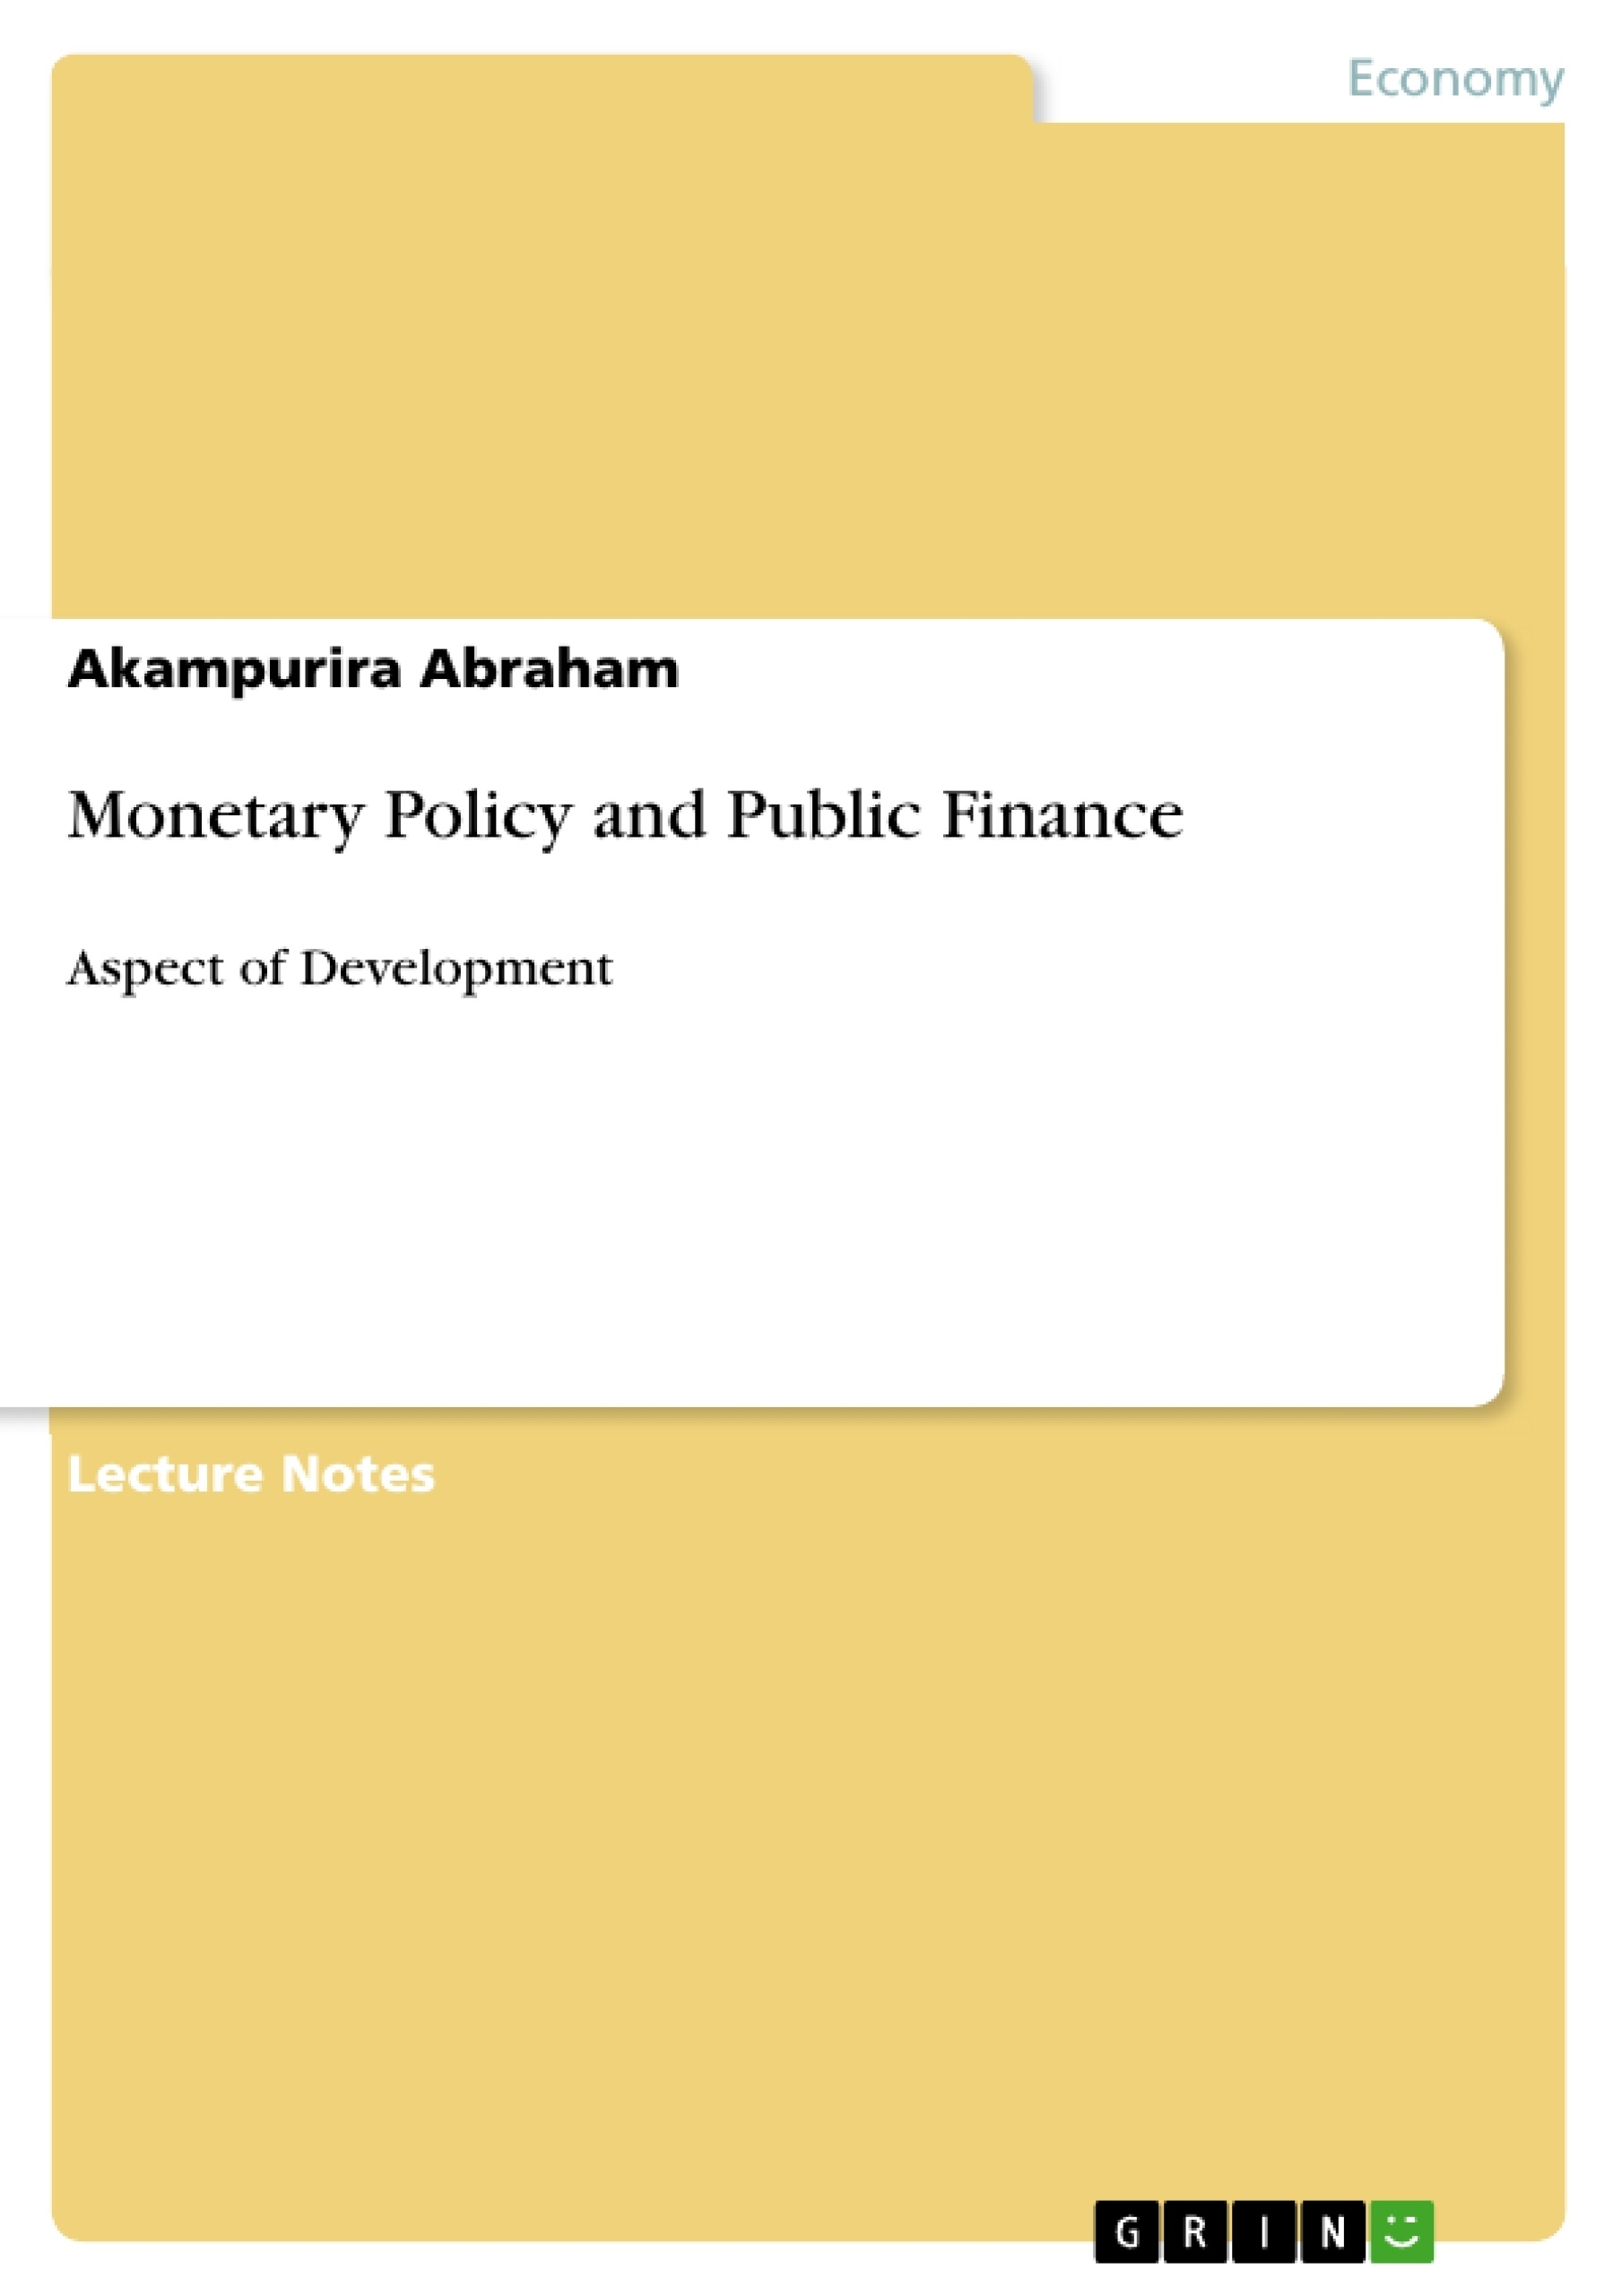 Title: Monetary Policy and Public Finance